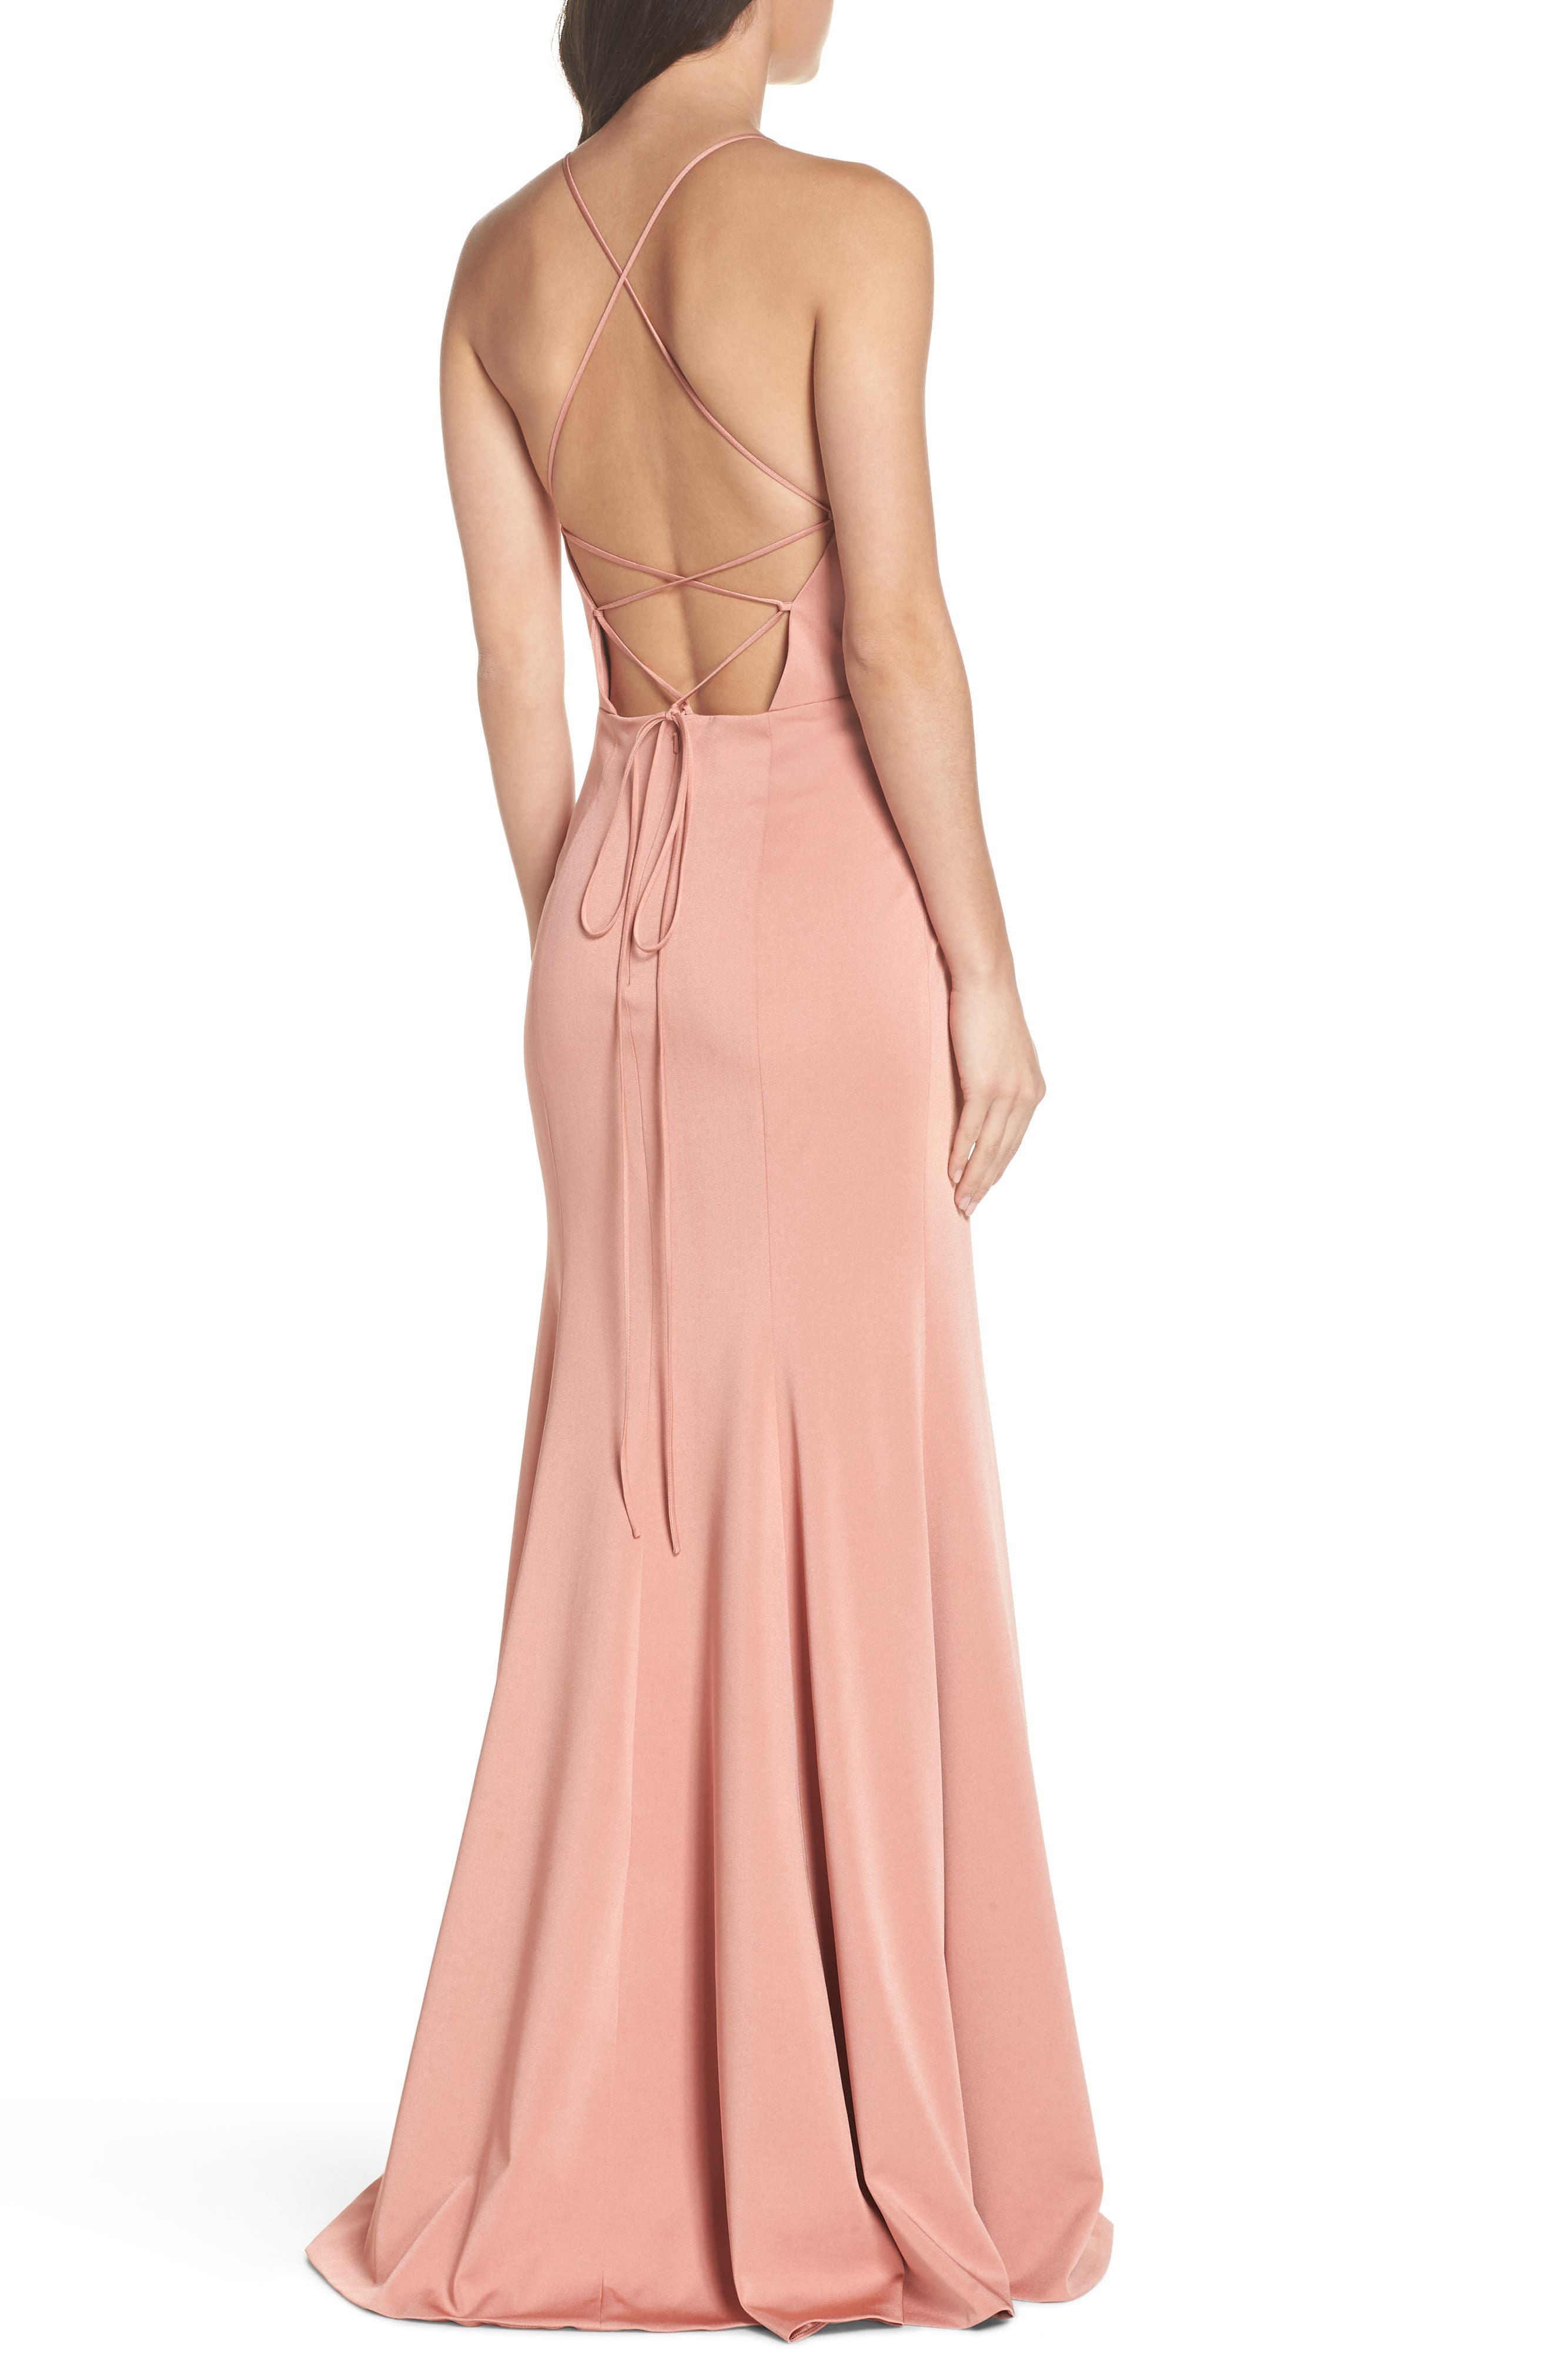 Naomi Luxe Crepe Halter Gown,                             Alternate thumbnail 2, color,                             Sedona Sunset